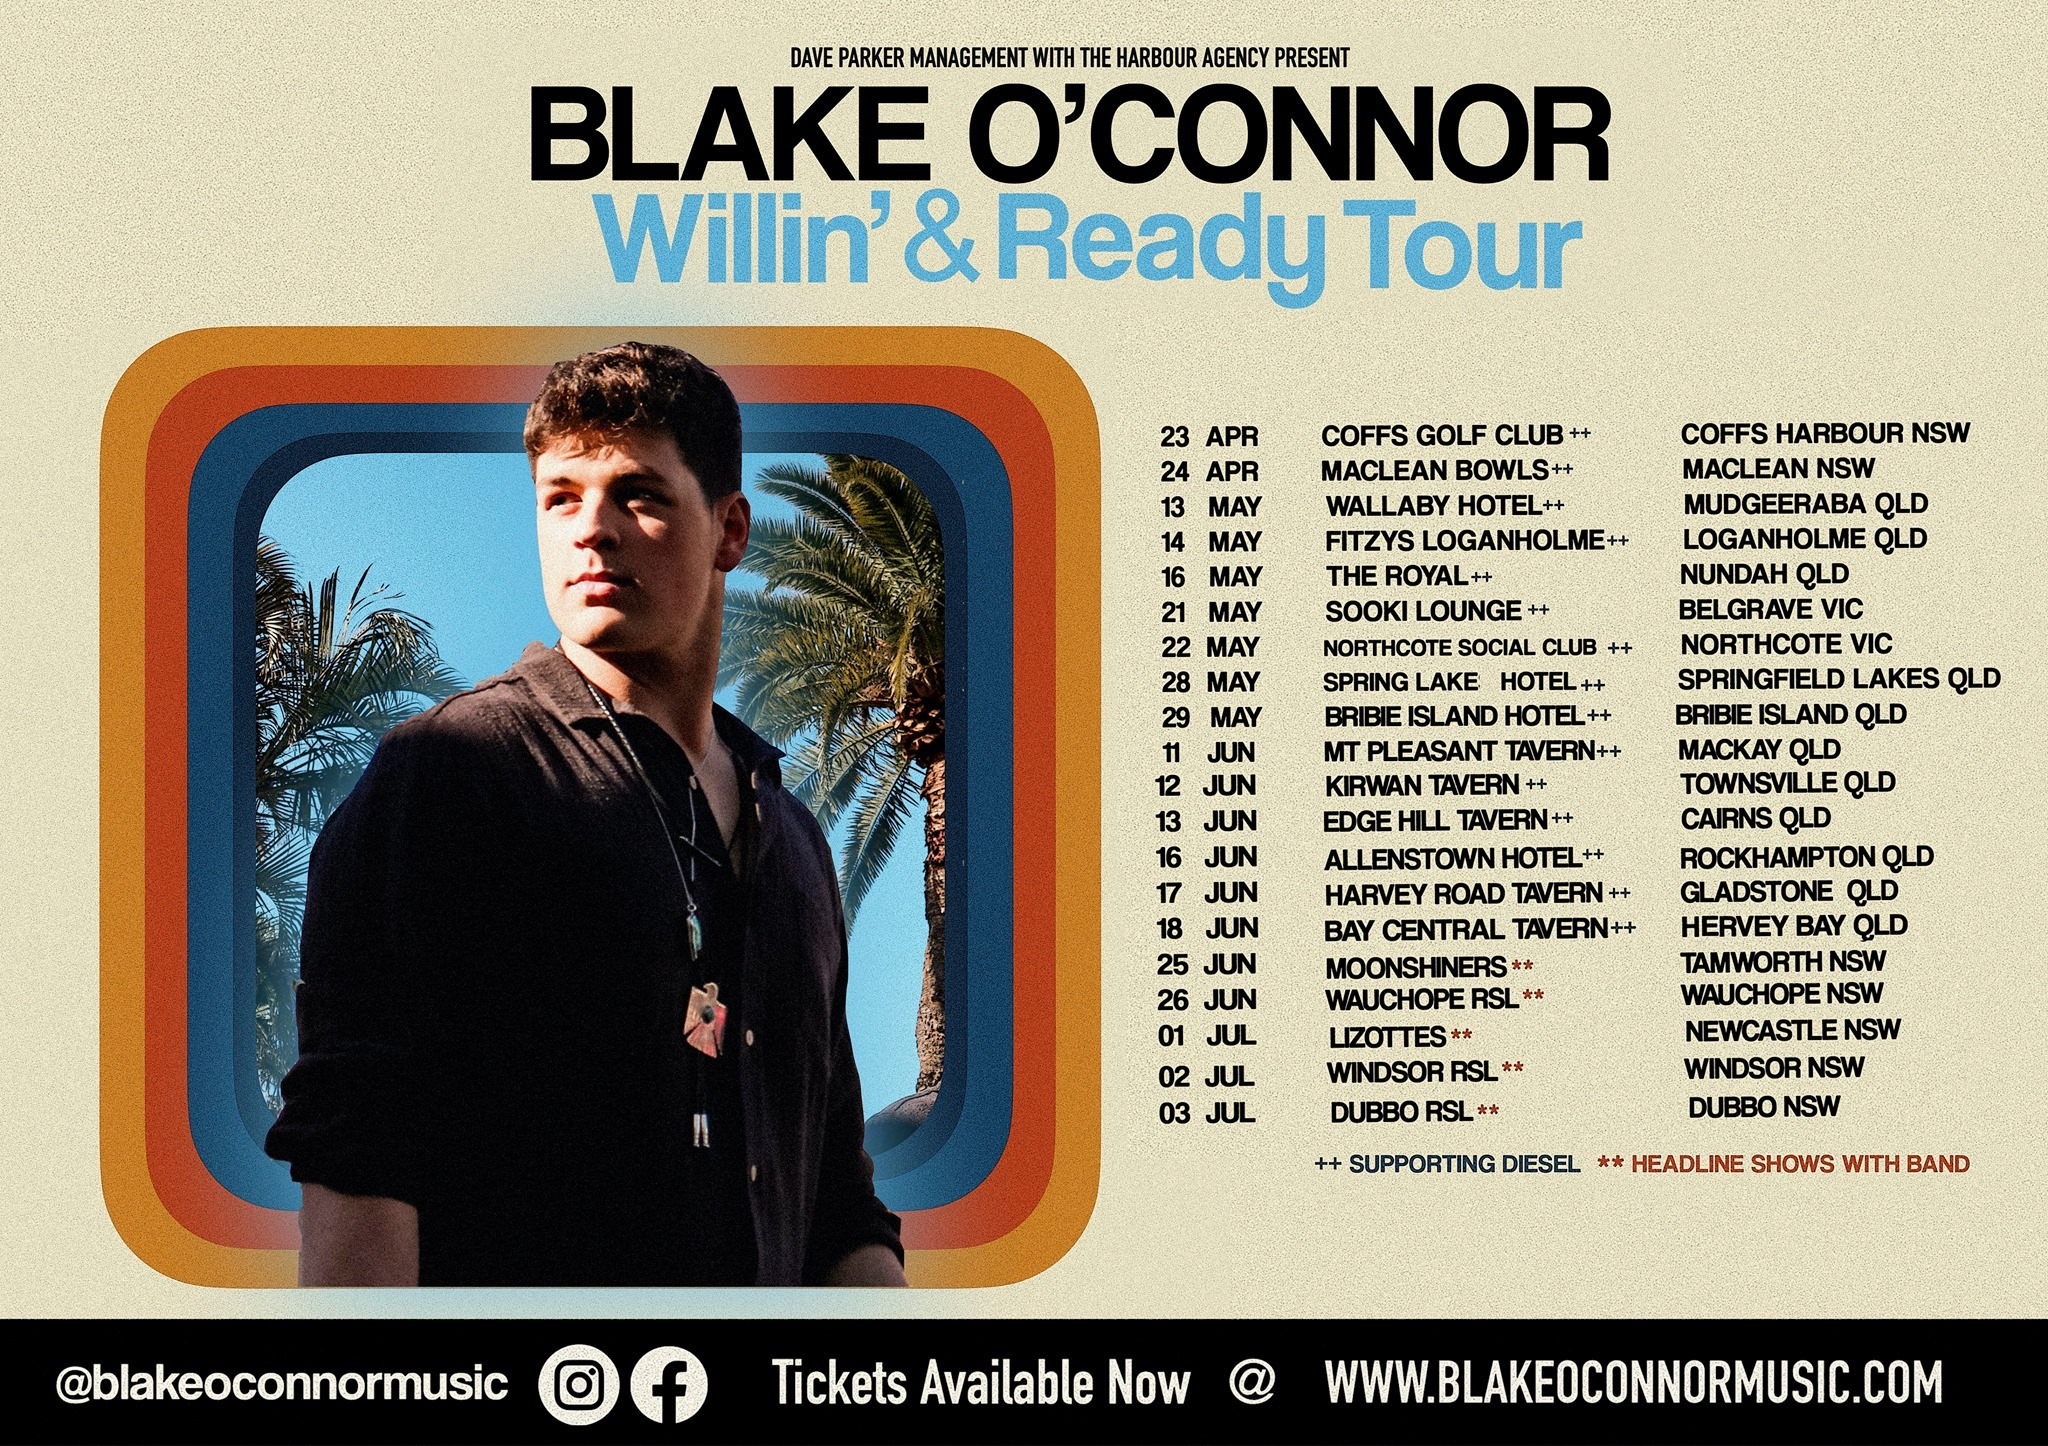 BLAKE O'CONNOR & BAND- WILLIN' AND READY TOUR